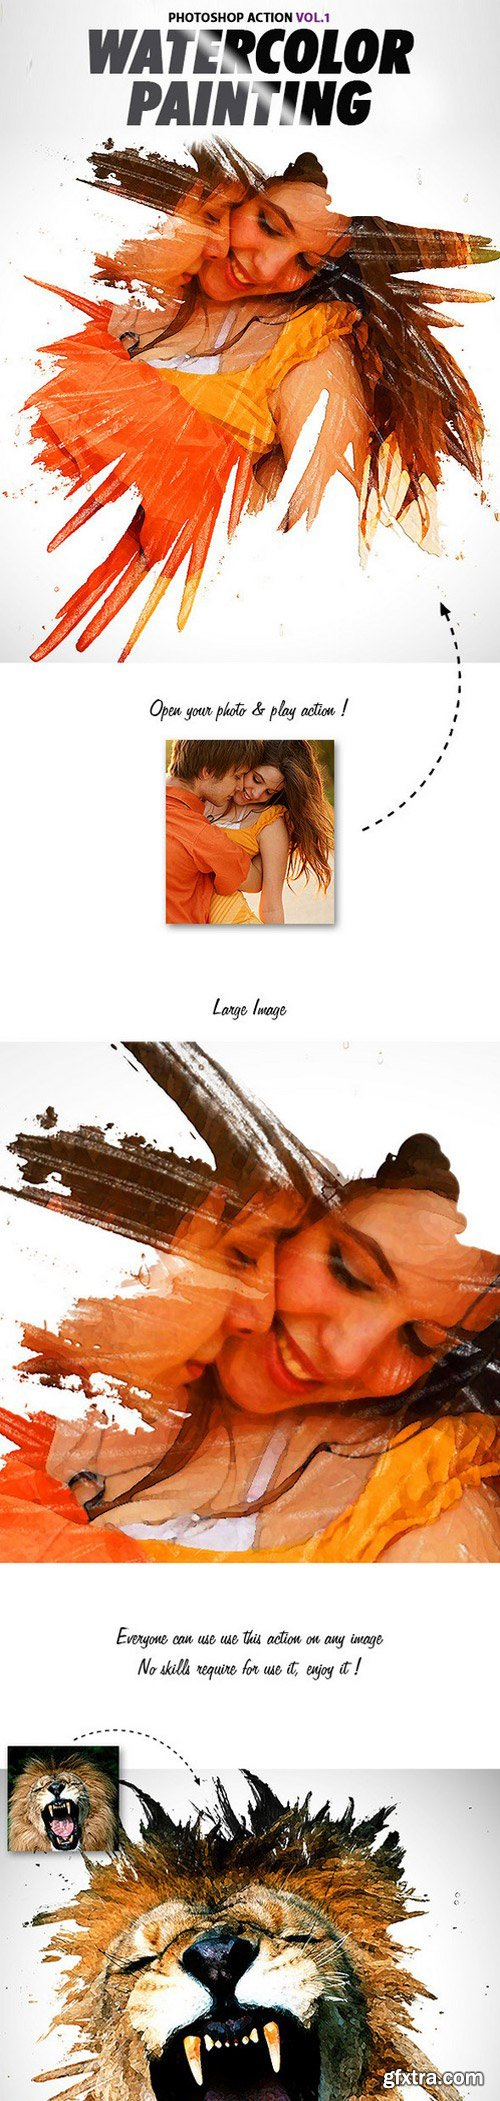 GraphicRiver - Watercolor Painting Vol1 Photoshop Action 11526676